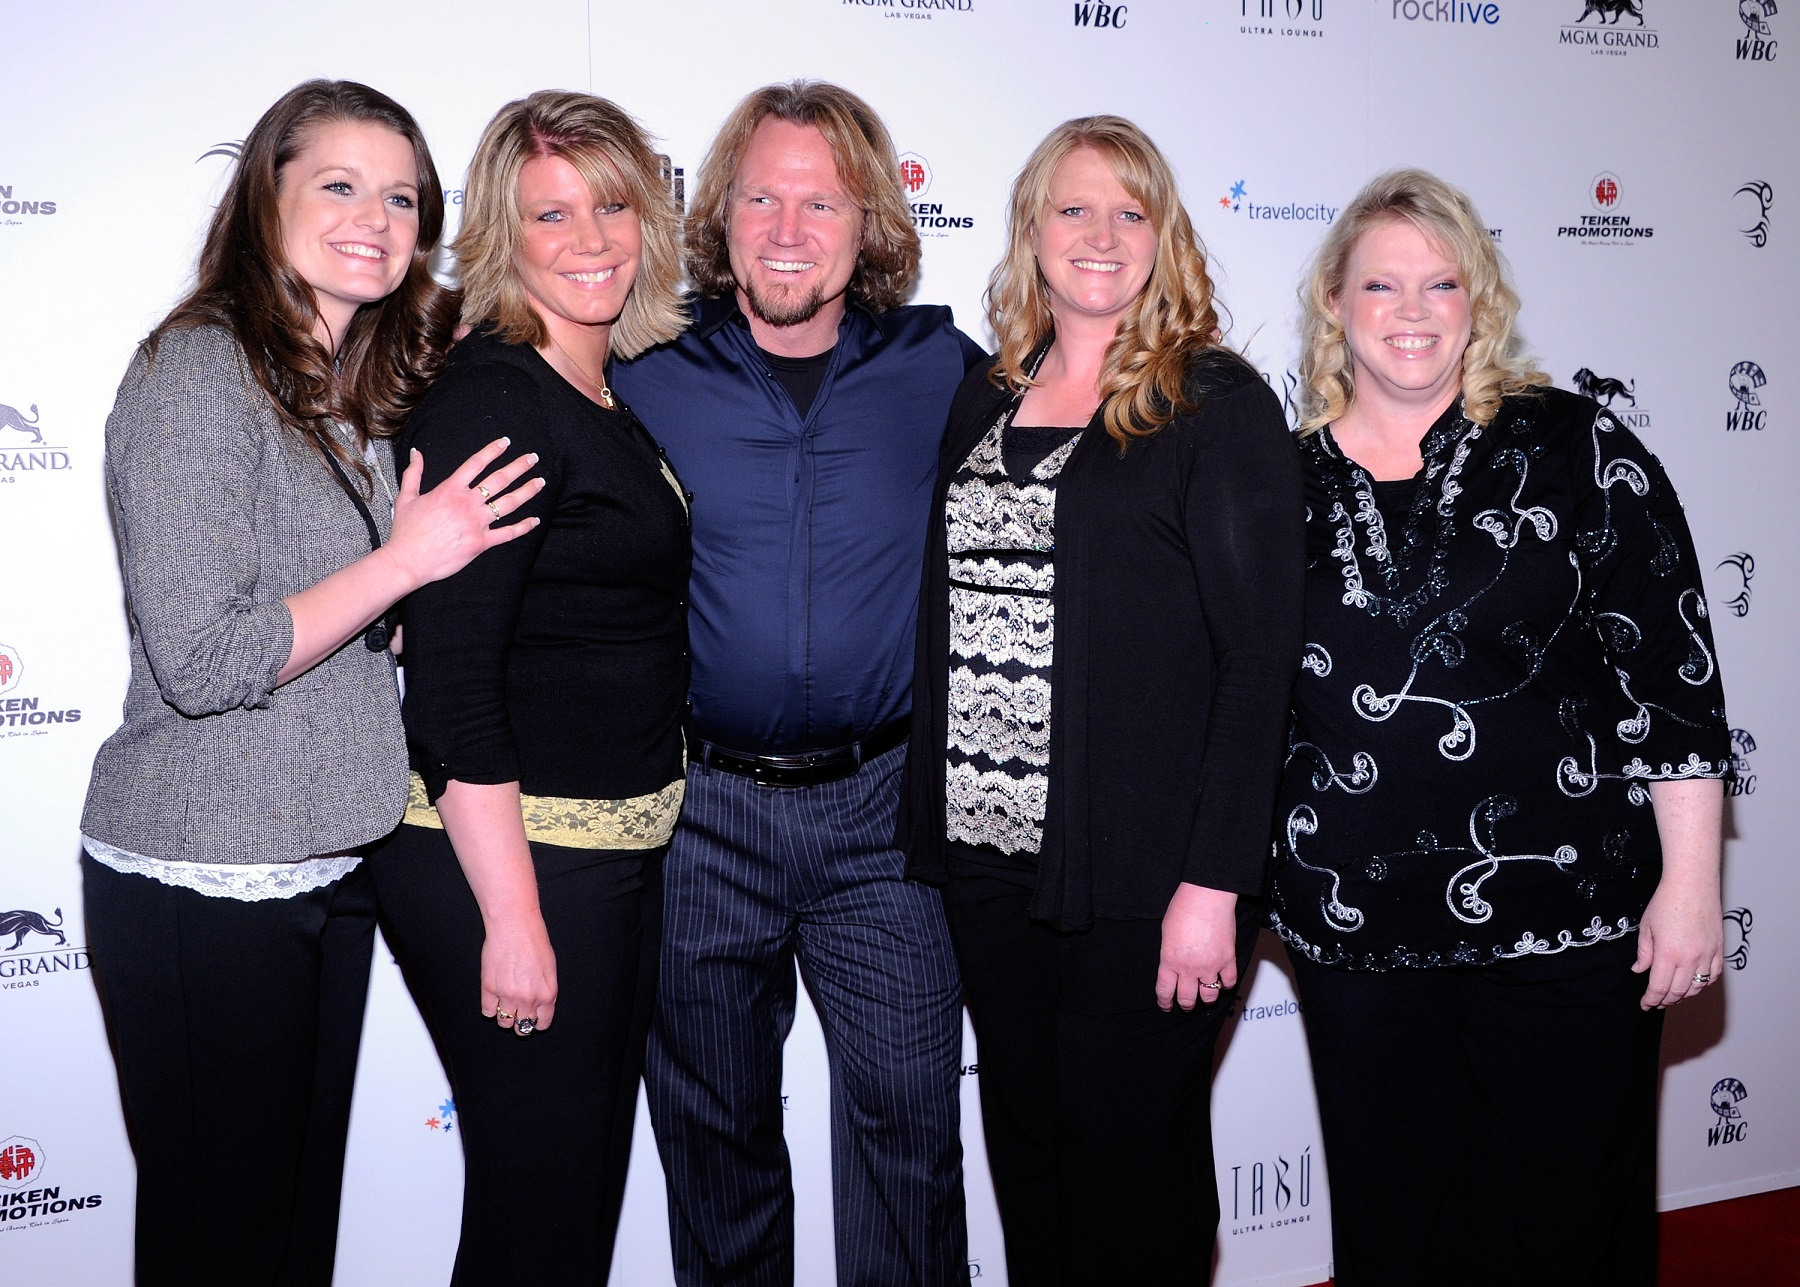 Robyn Brown, Meri Brown, Kody Brown, Christine Brown, and Janelle Brown from Sister Wives